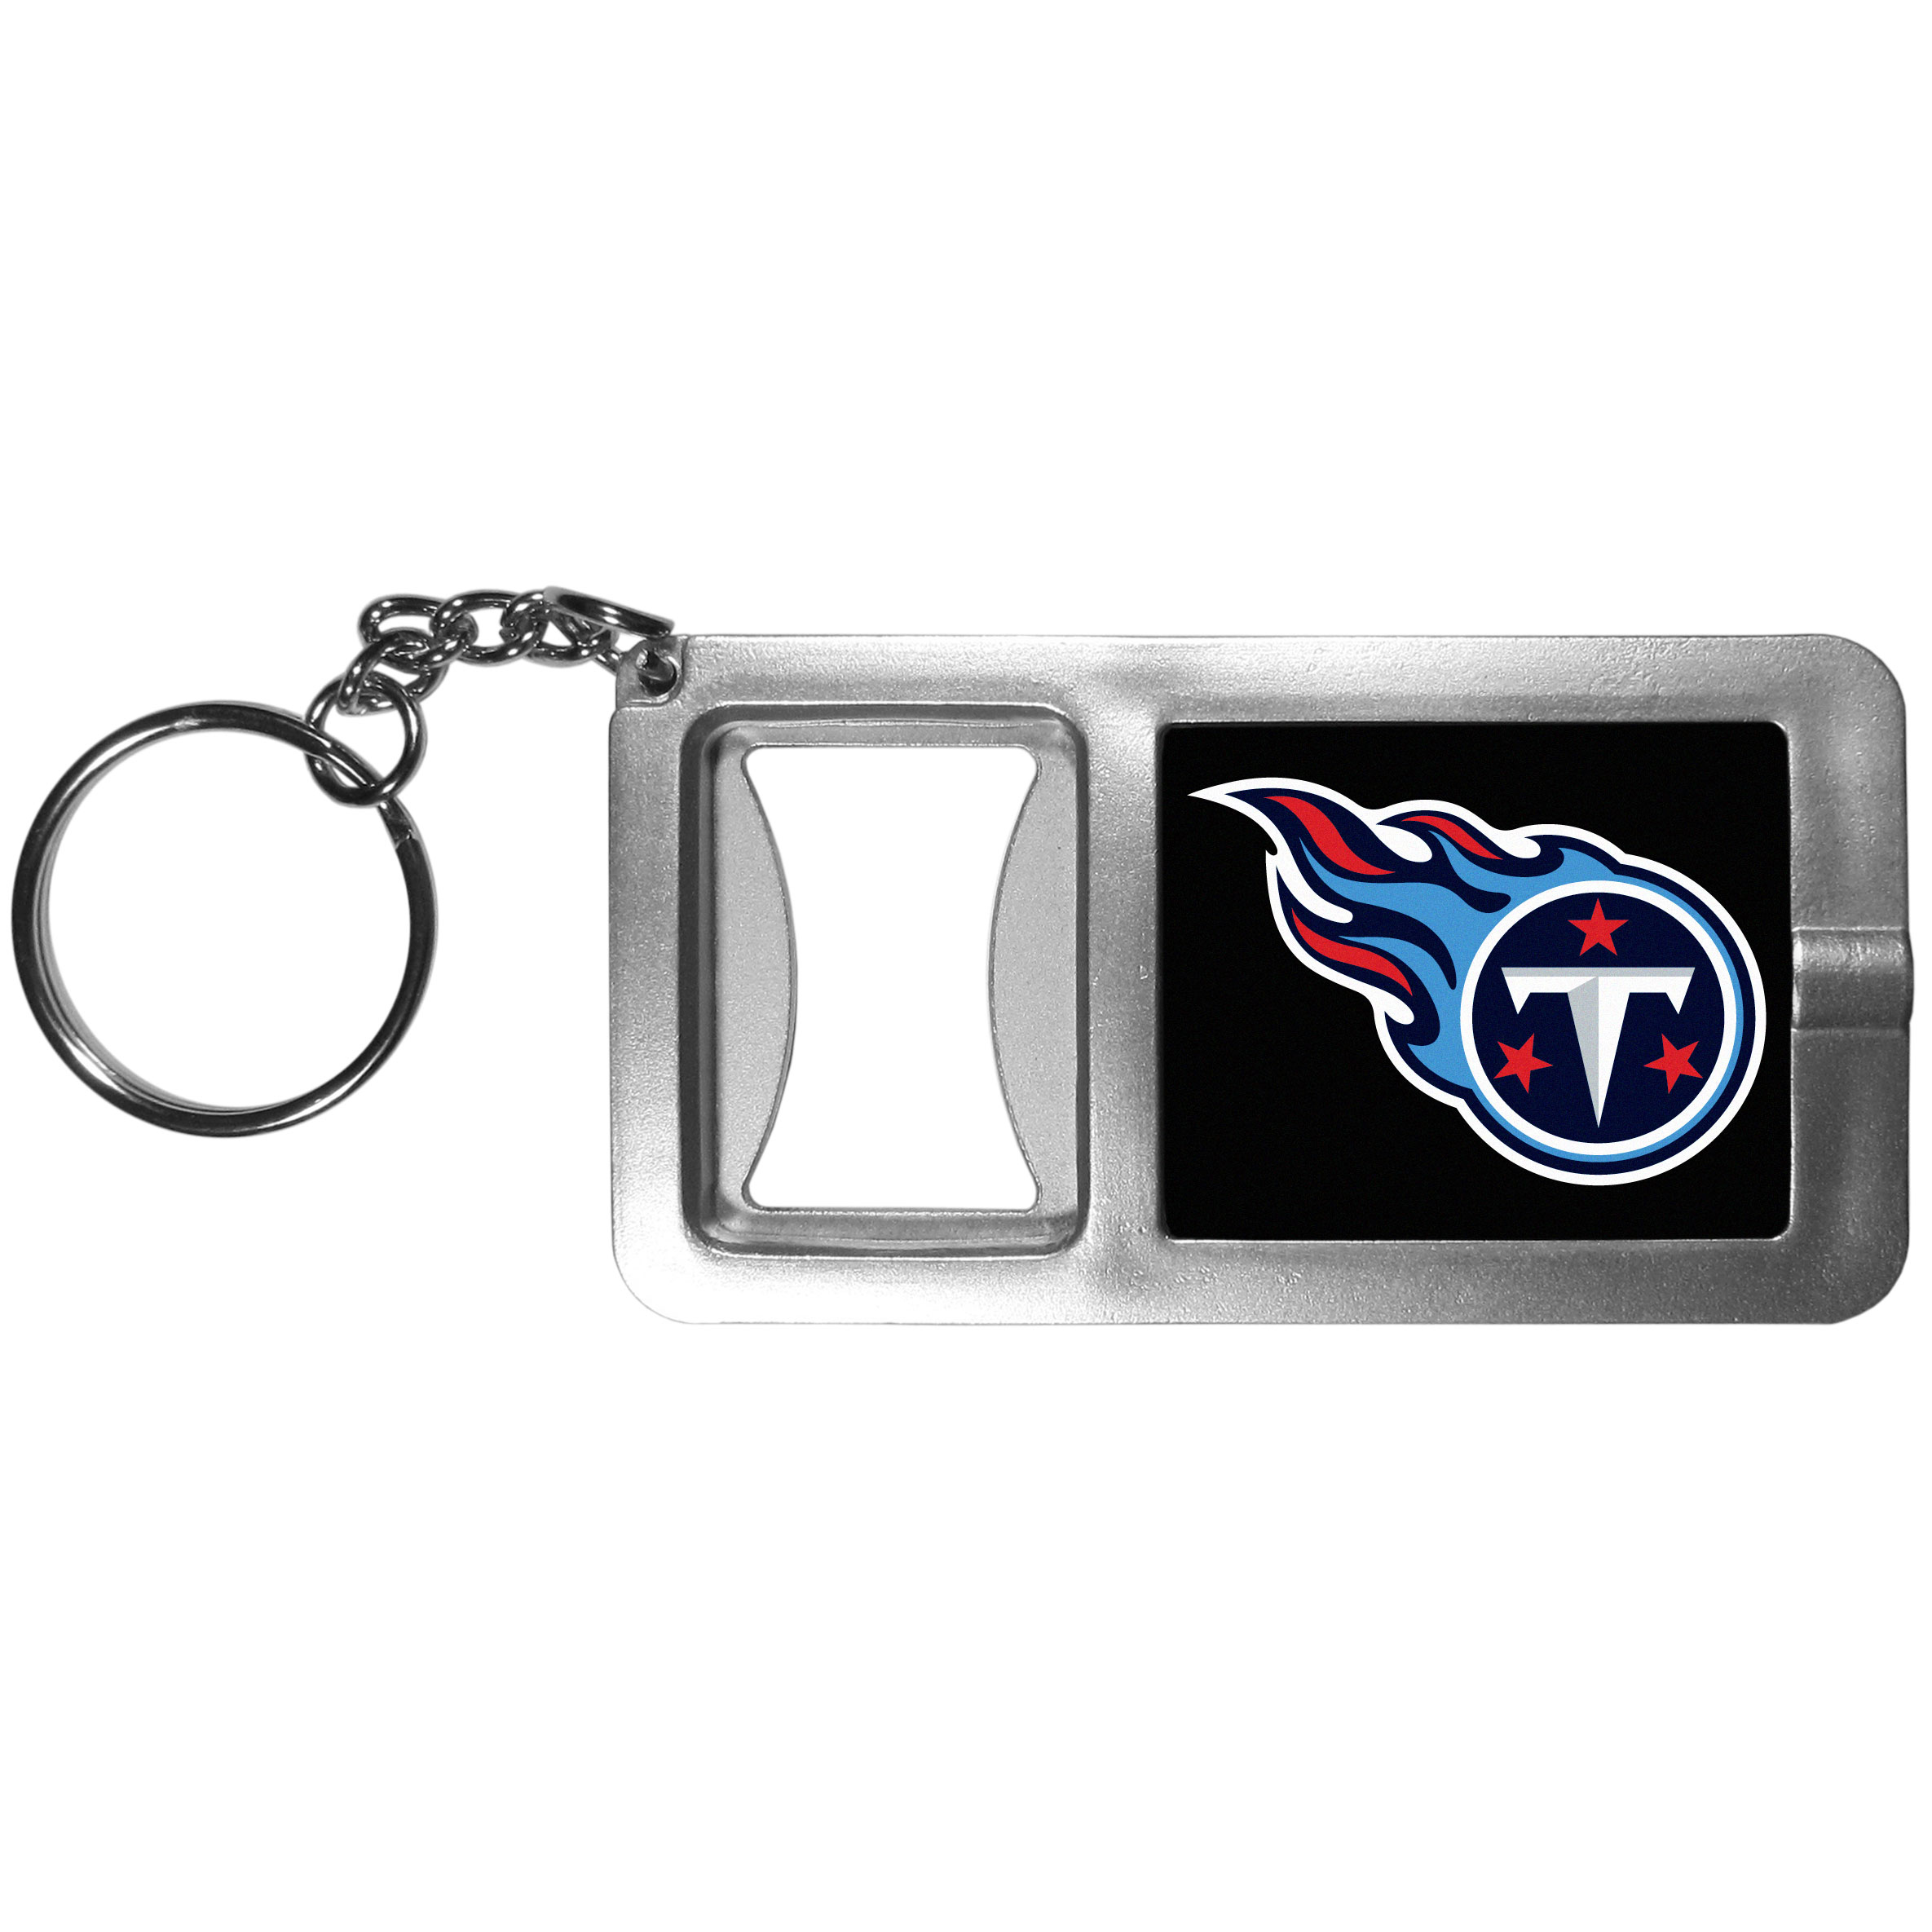 Tennessee Titans Flashlight Key Chain with Bottle Opener - Never be without light with our Tennessee Titans flashlight keychain that features a handy bottle opener feature. This versatile key chain is perfect for camping and travel and is a great way to show off your team pride!